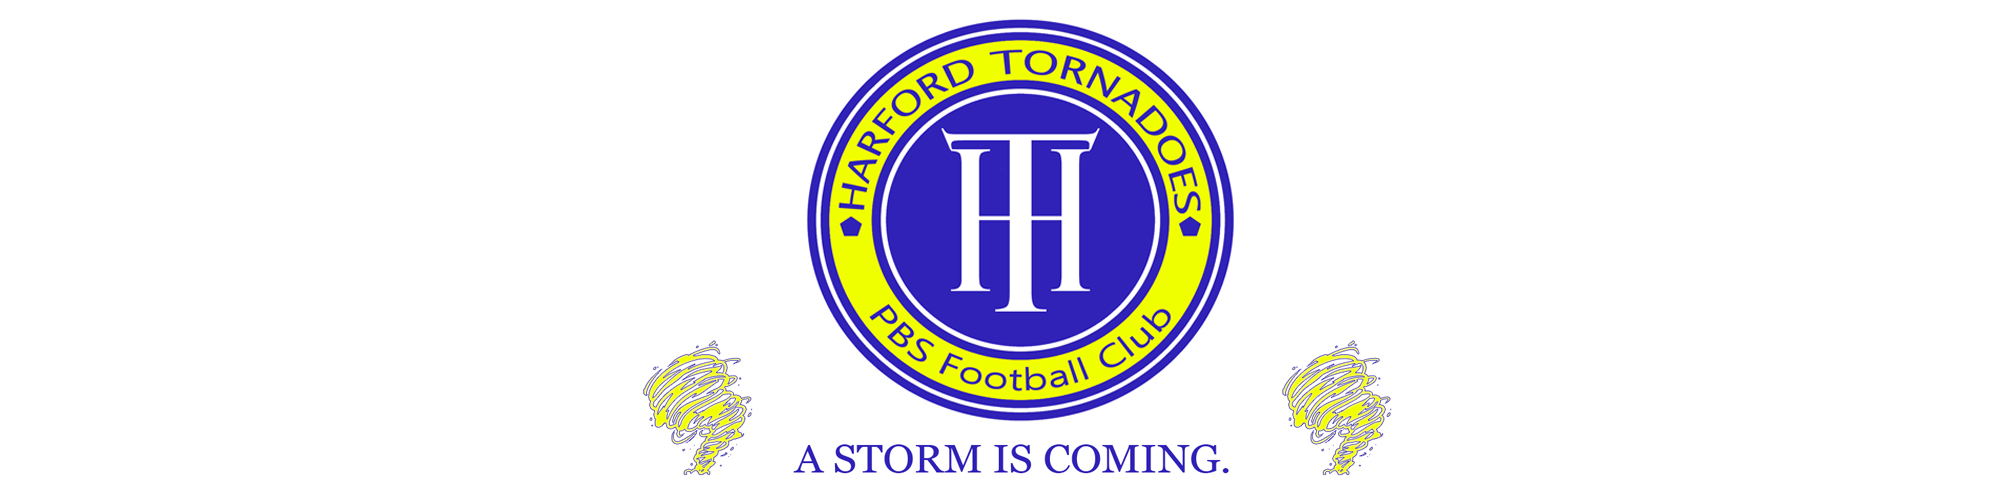 Harford-News-Page